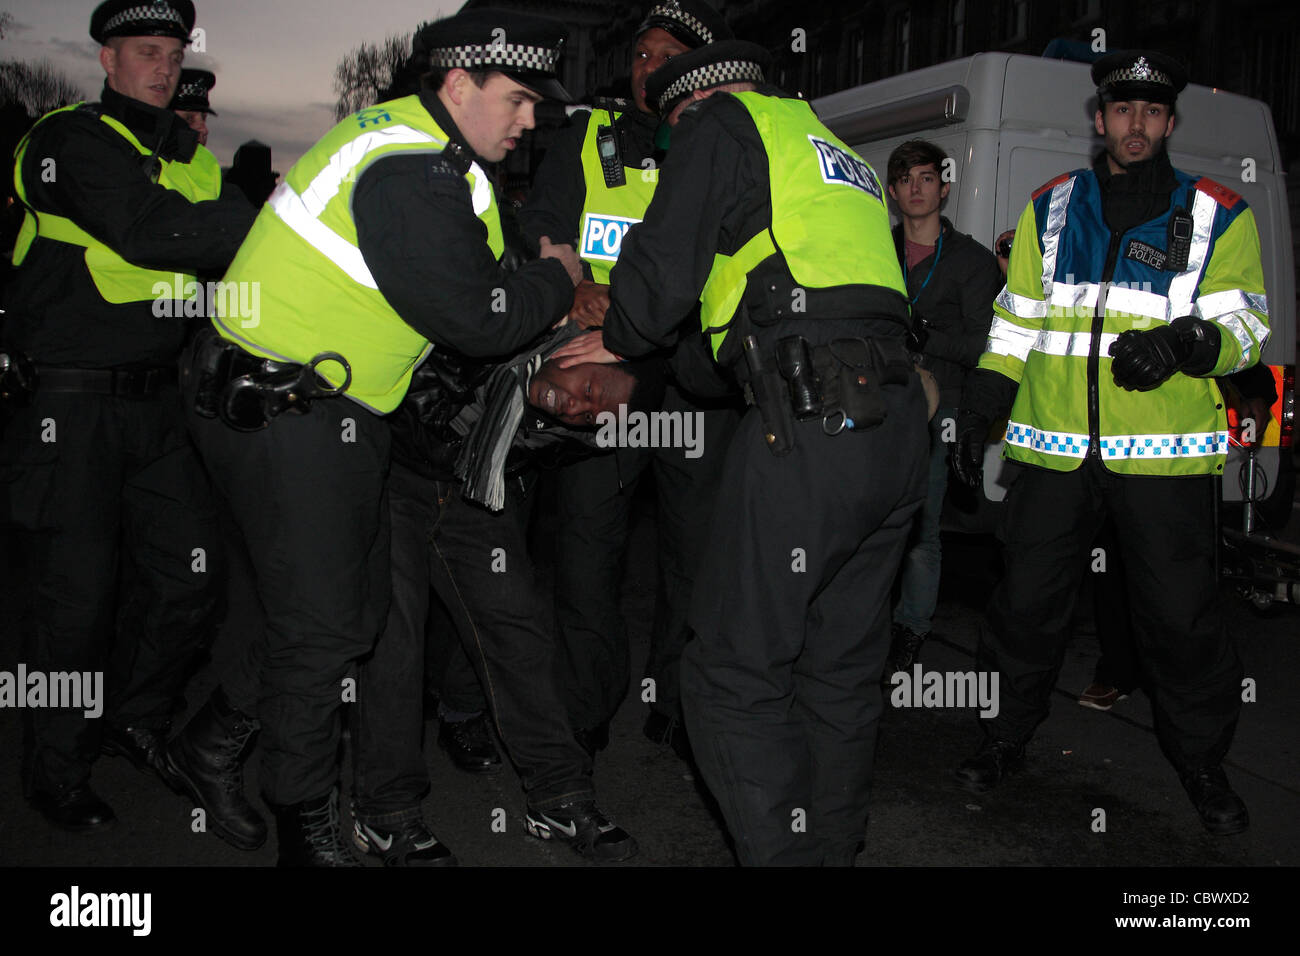 Police arrest protester at Congolese demonstration - Stock Image